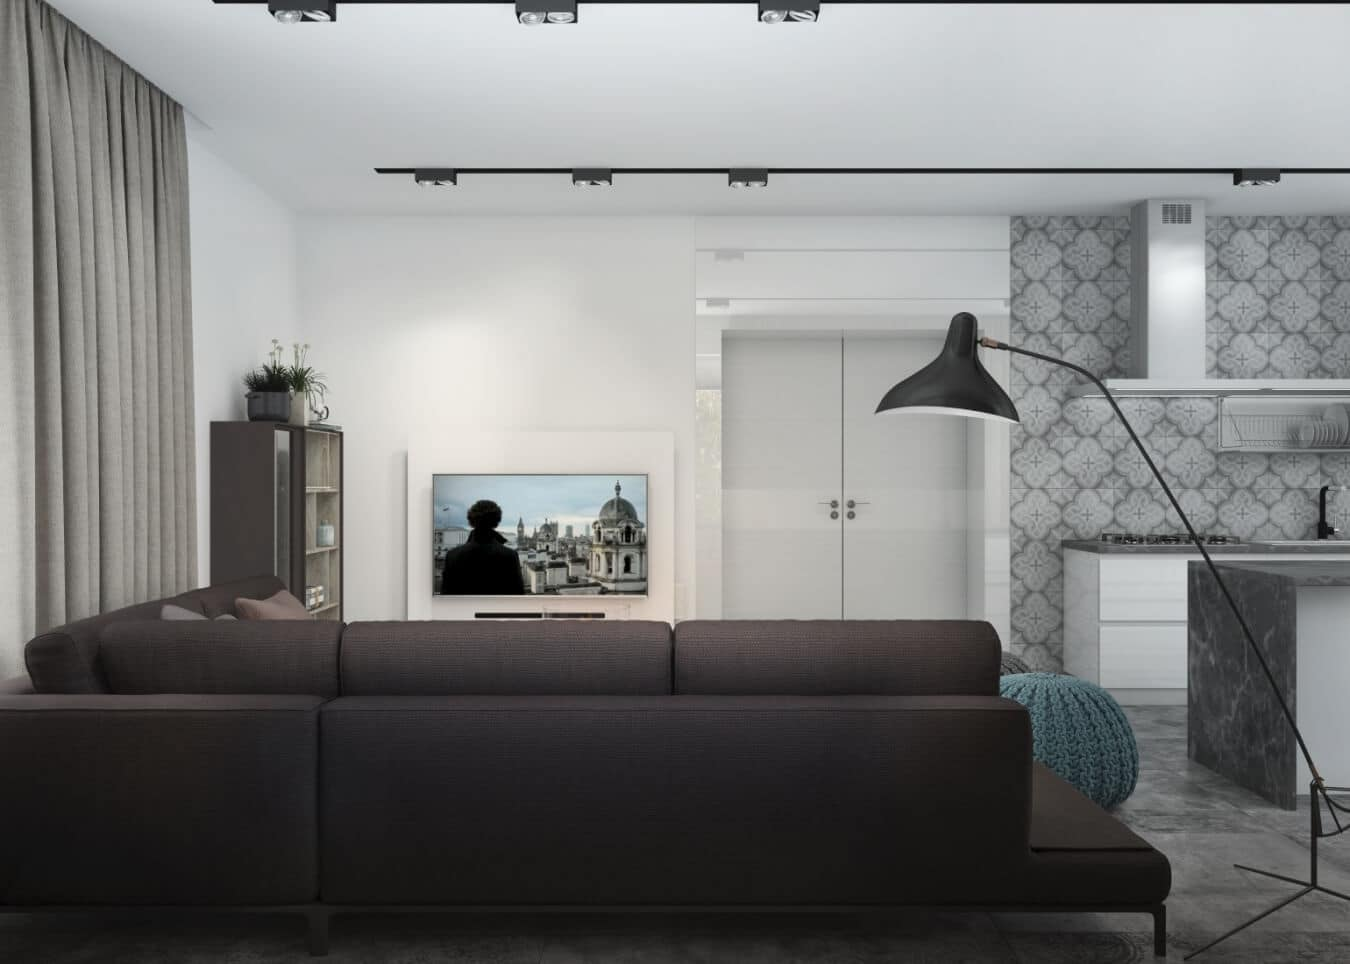 Dark sofa and floor lamp to make living zone maximally cozy for casual interior